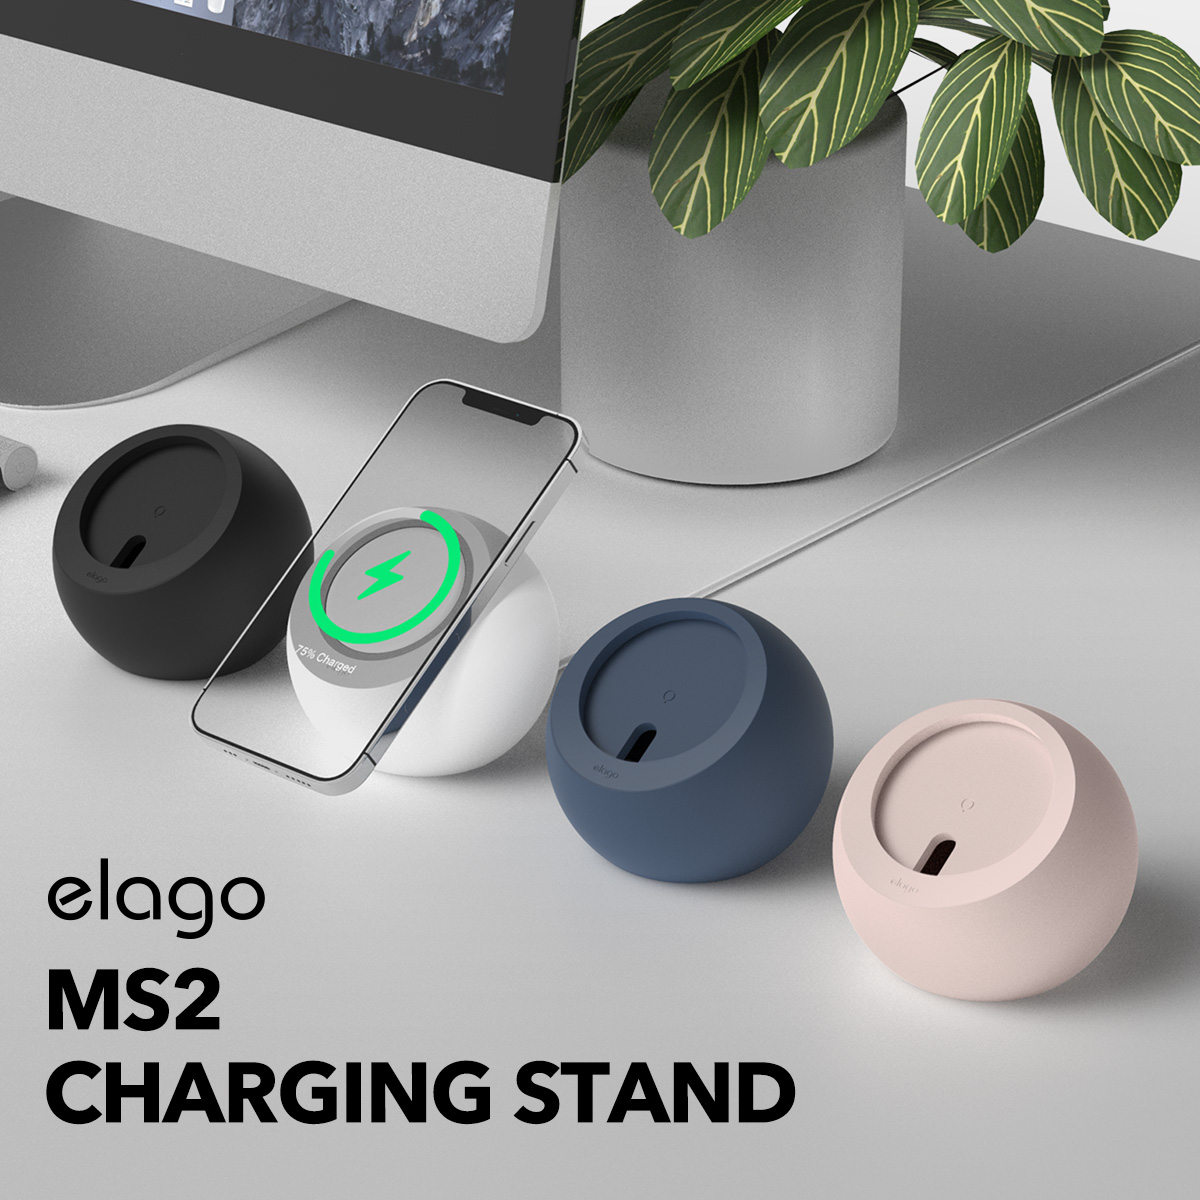 elago MS2 CHARGING STAND for iPhone12